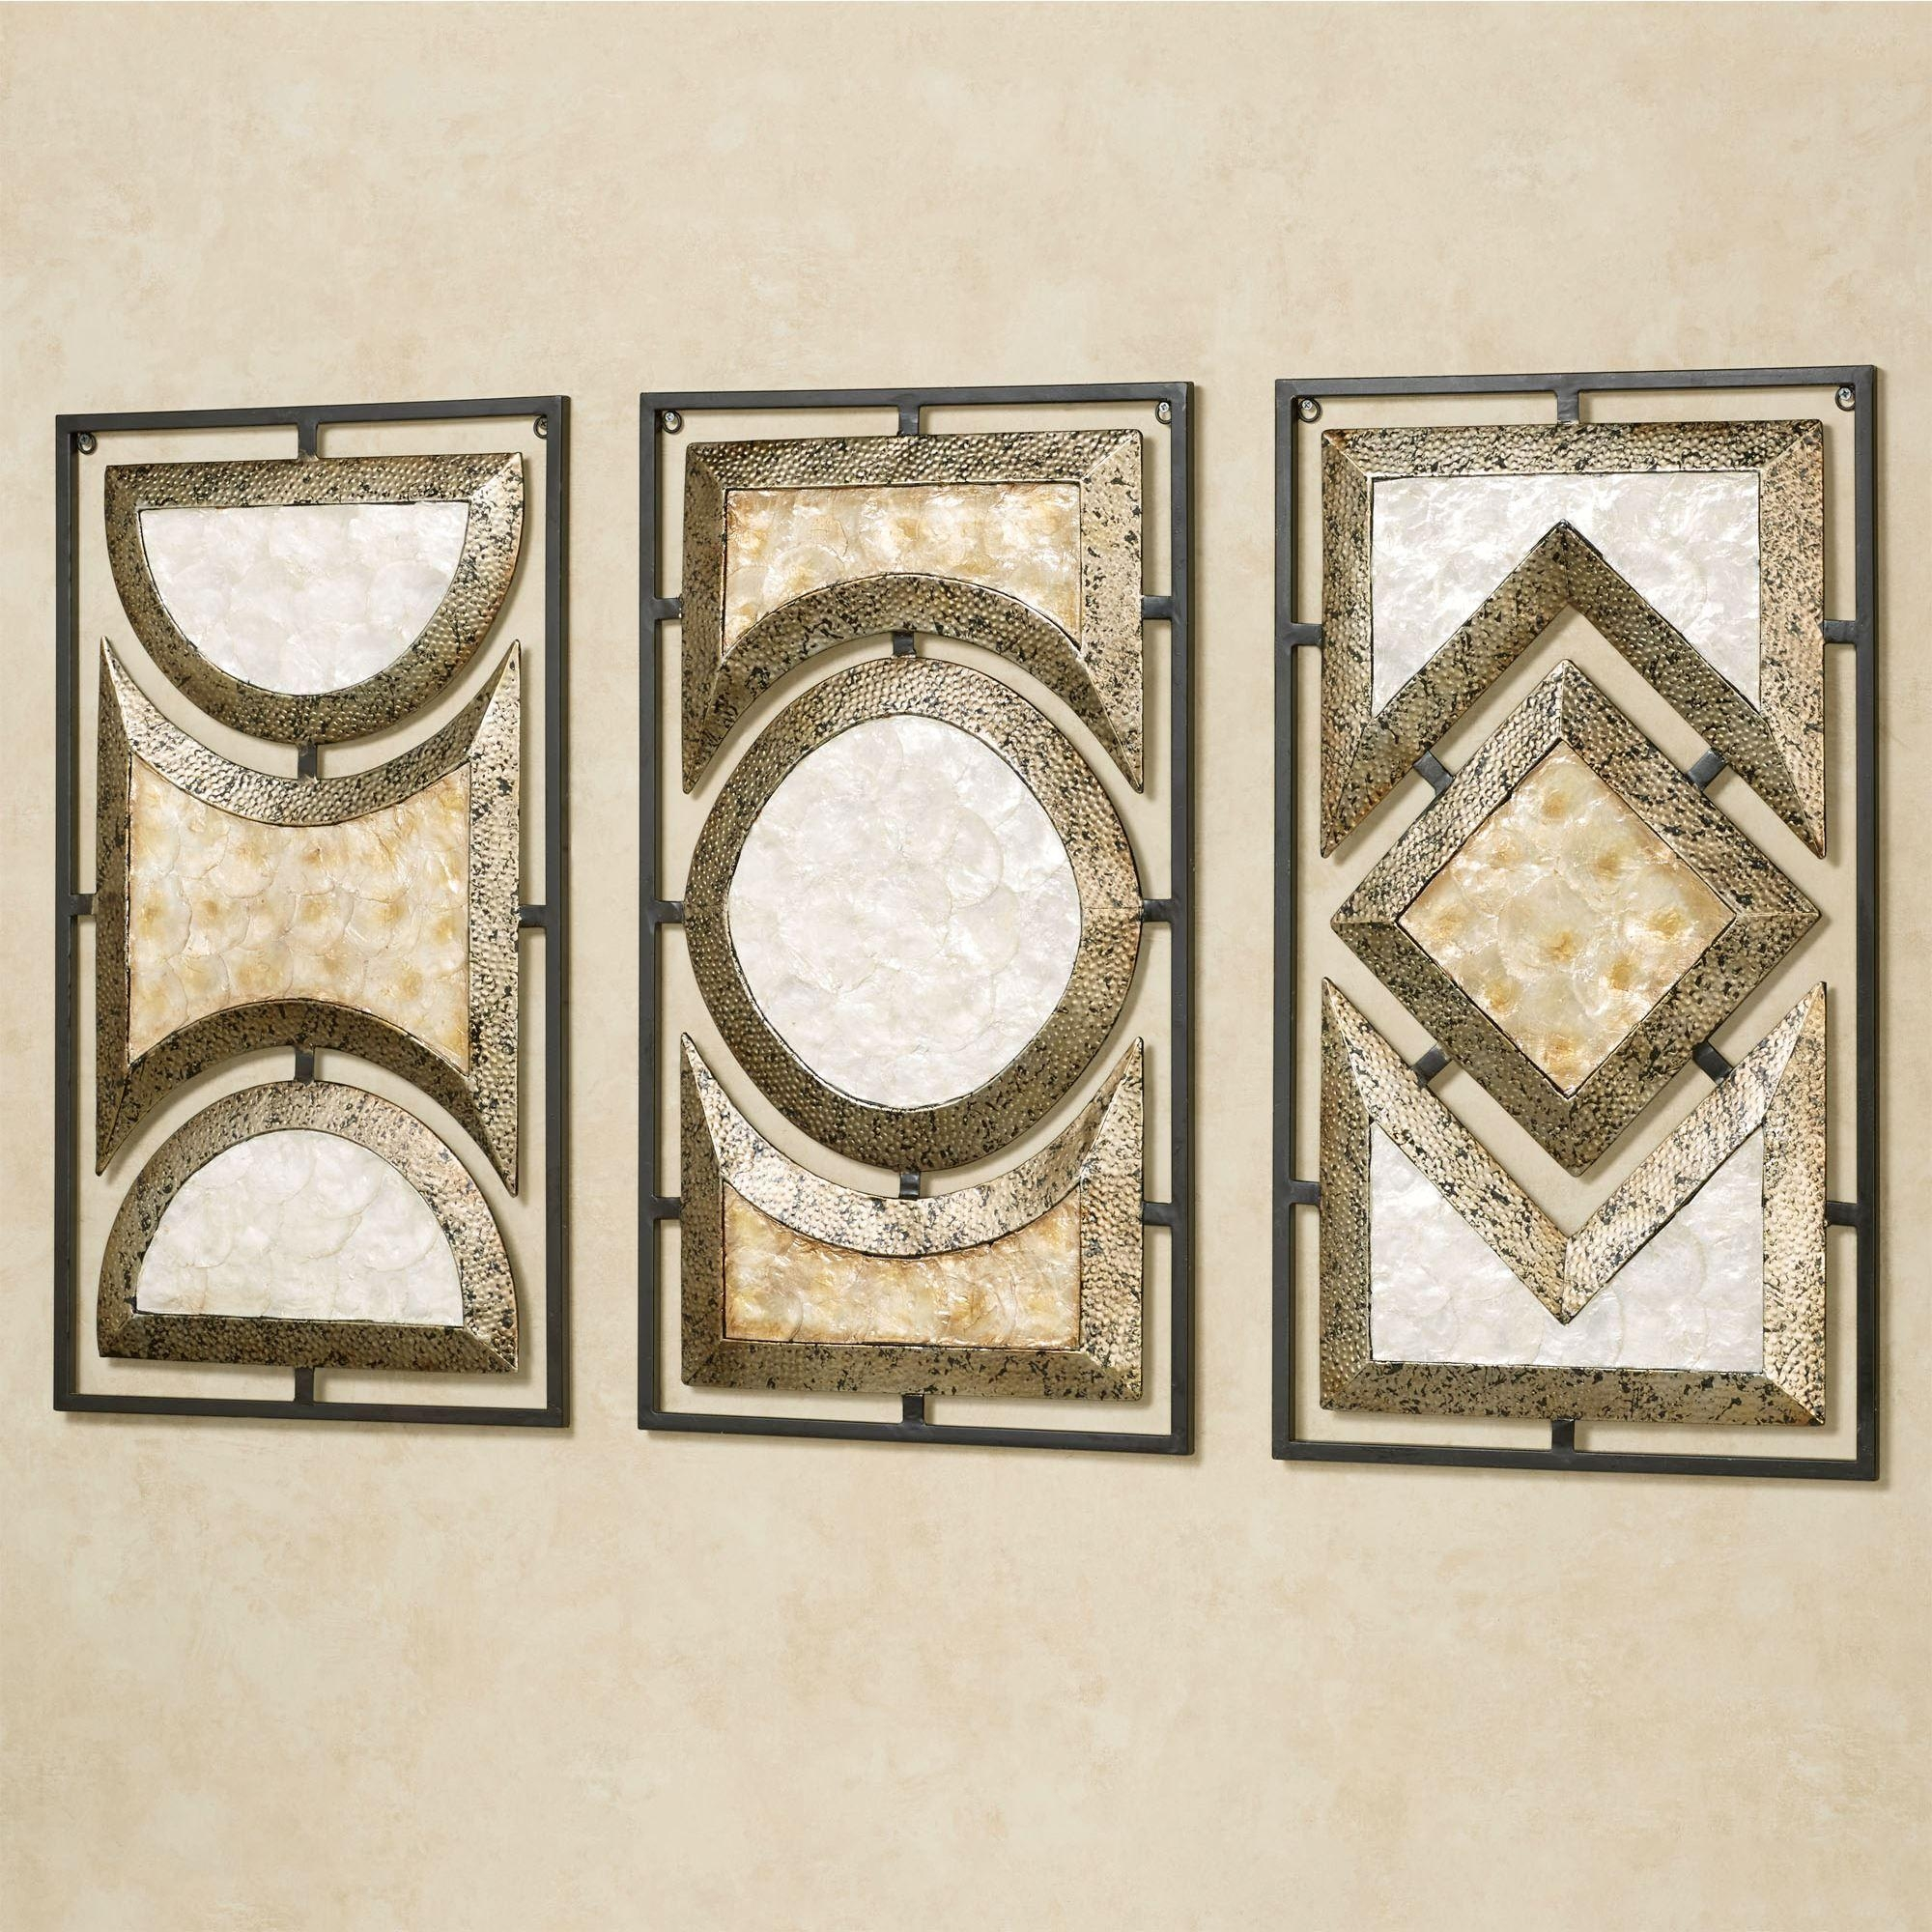 Pasquale Capiz Shell Metal Wall Art Set Intended For Capiz Wall Art (View 4 of 20)